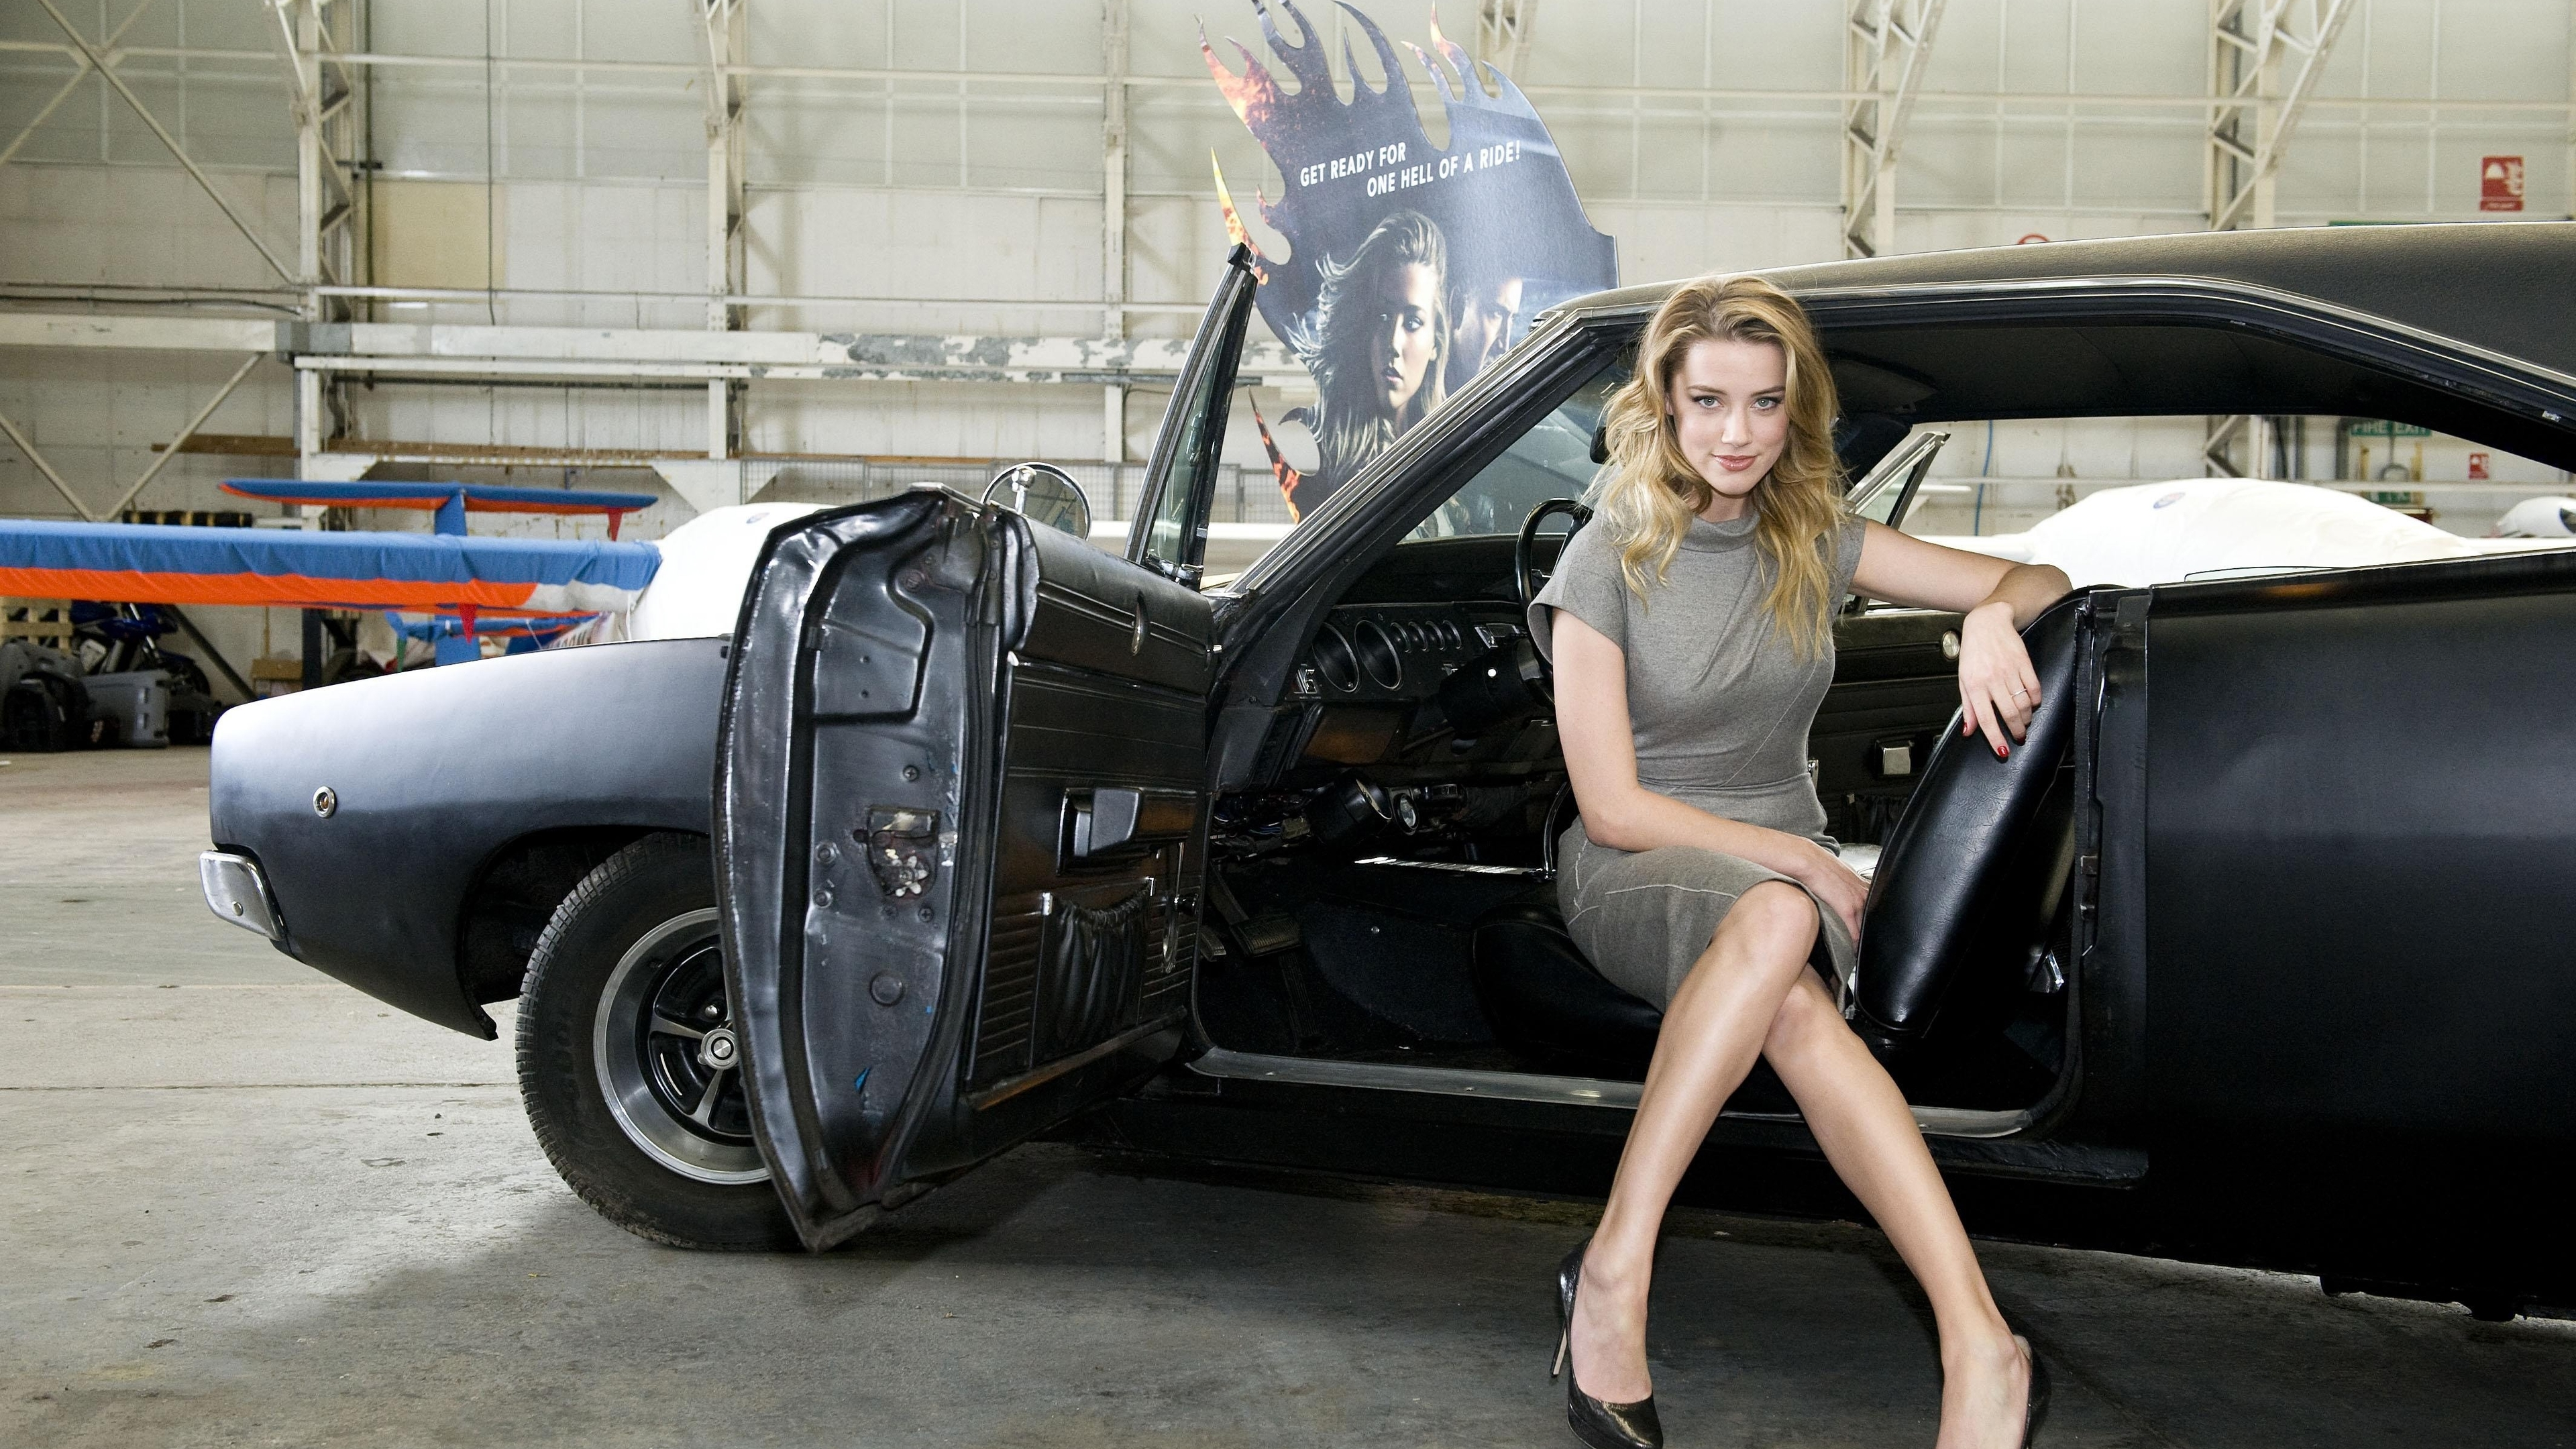 amber heard drive angry movie photoshoot 1536863849 - Amber Heard Drive Angry Movie Photoshoot - photoshoot wallpapers, hd-wallpapers, girls wallpapers, celebrities wallpapers, amber heard wallpapers, 4k-wallpapers